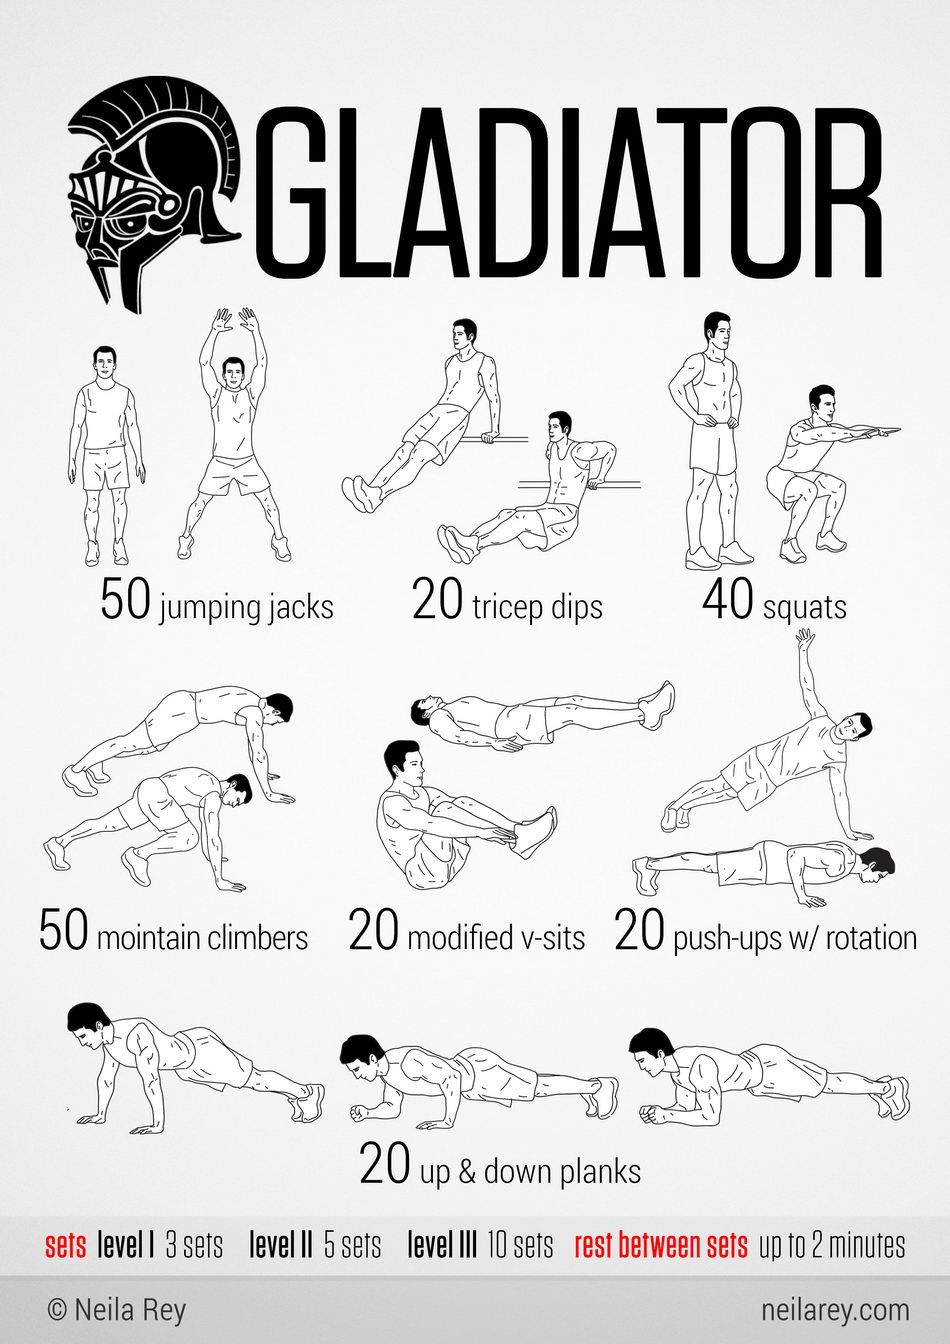 gladiator workout workout routines trainings gladiator workout 100 workout no equipment. Black Bedroom Furniture Sets. Home Design Ideas